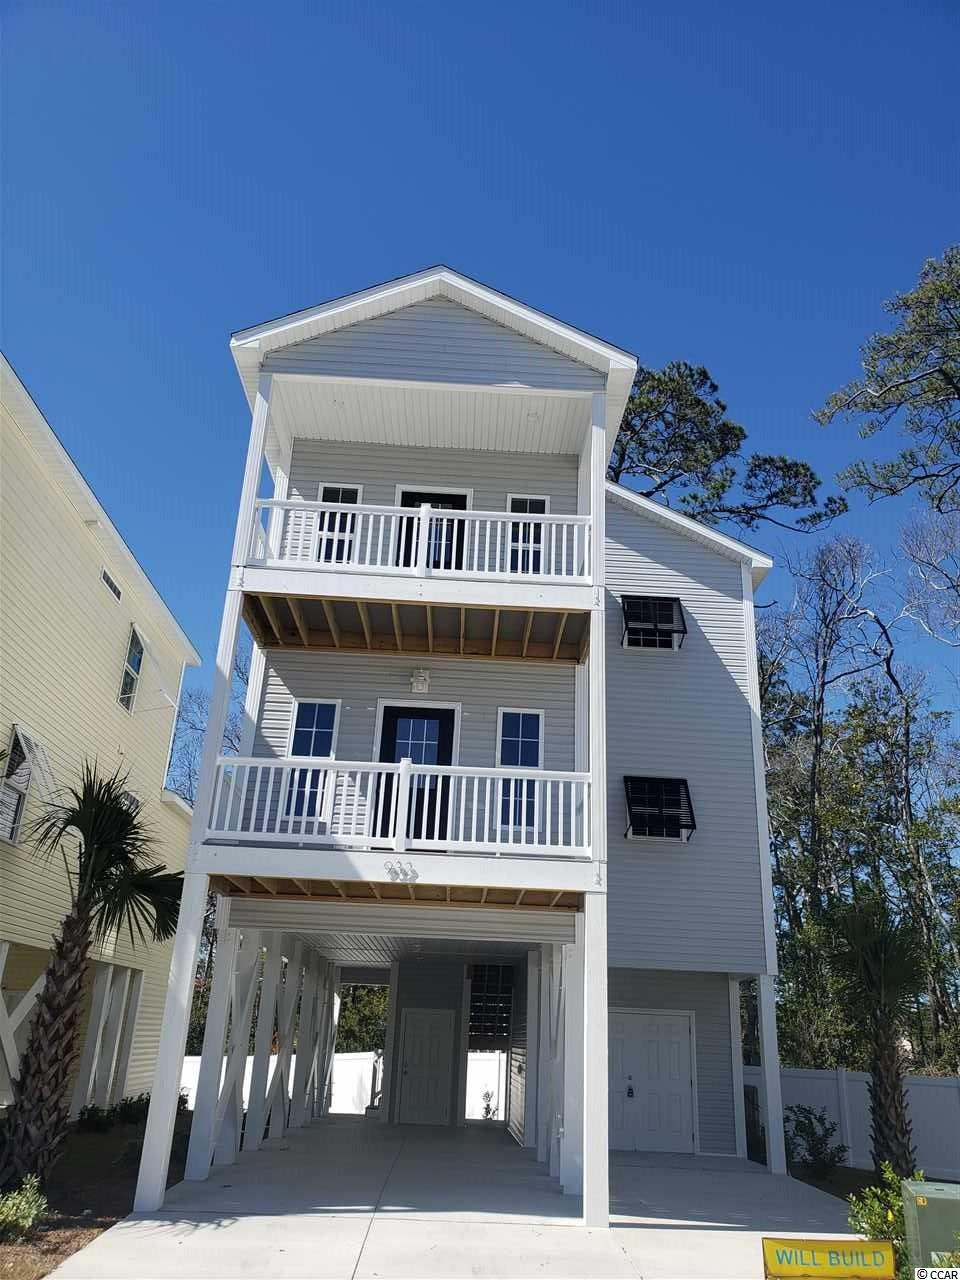 3BR / 2.5 BA / 1550 HSF raised beach home east of Hwy 17 in NMB. New construction home that features: 9' ceilings, custom kitchen with granite countertops and stainless appliance package, crown molding, master bath features tiled shower, wood floors throughout less baths, front porches, golf cart storage and parking under home, full landscape package with irrigation and concrete driveway.